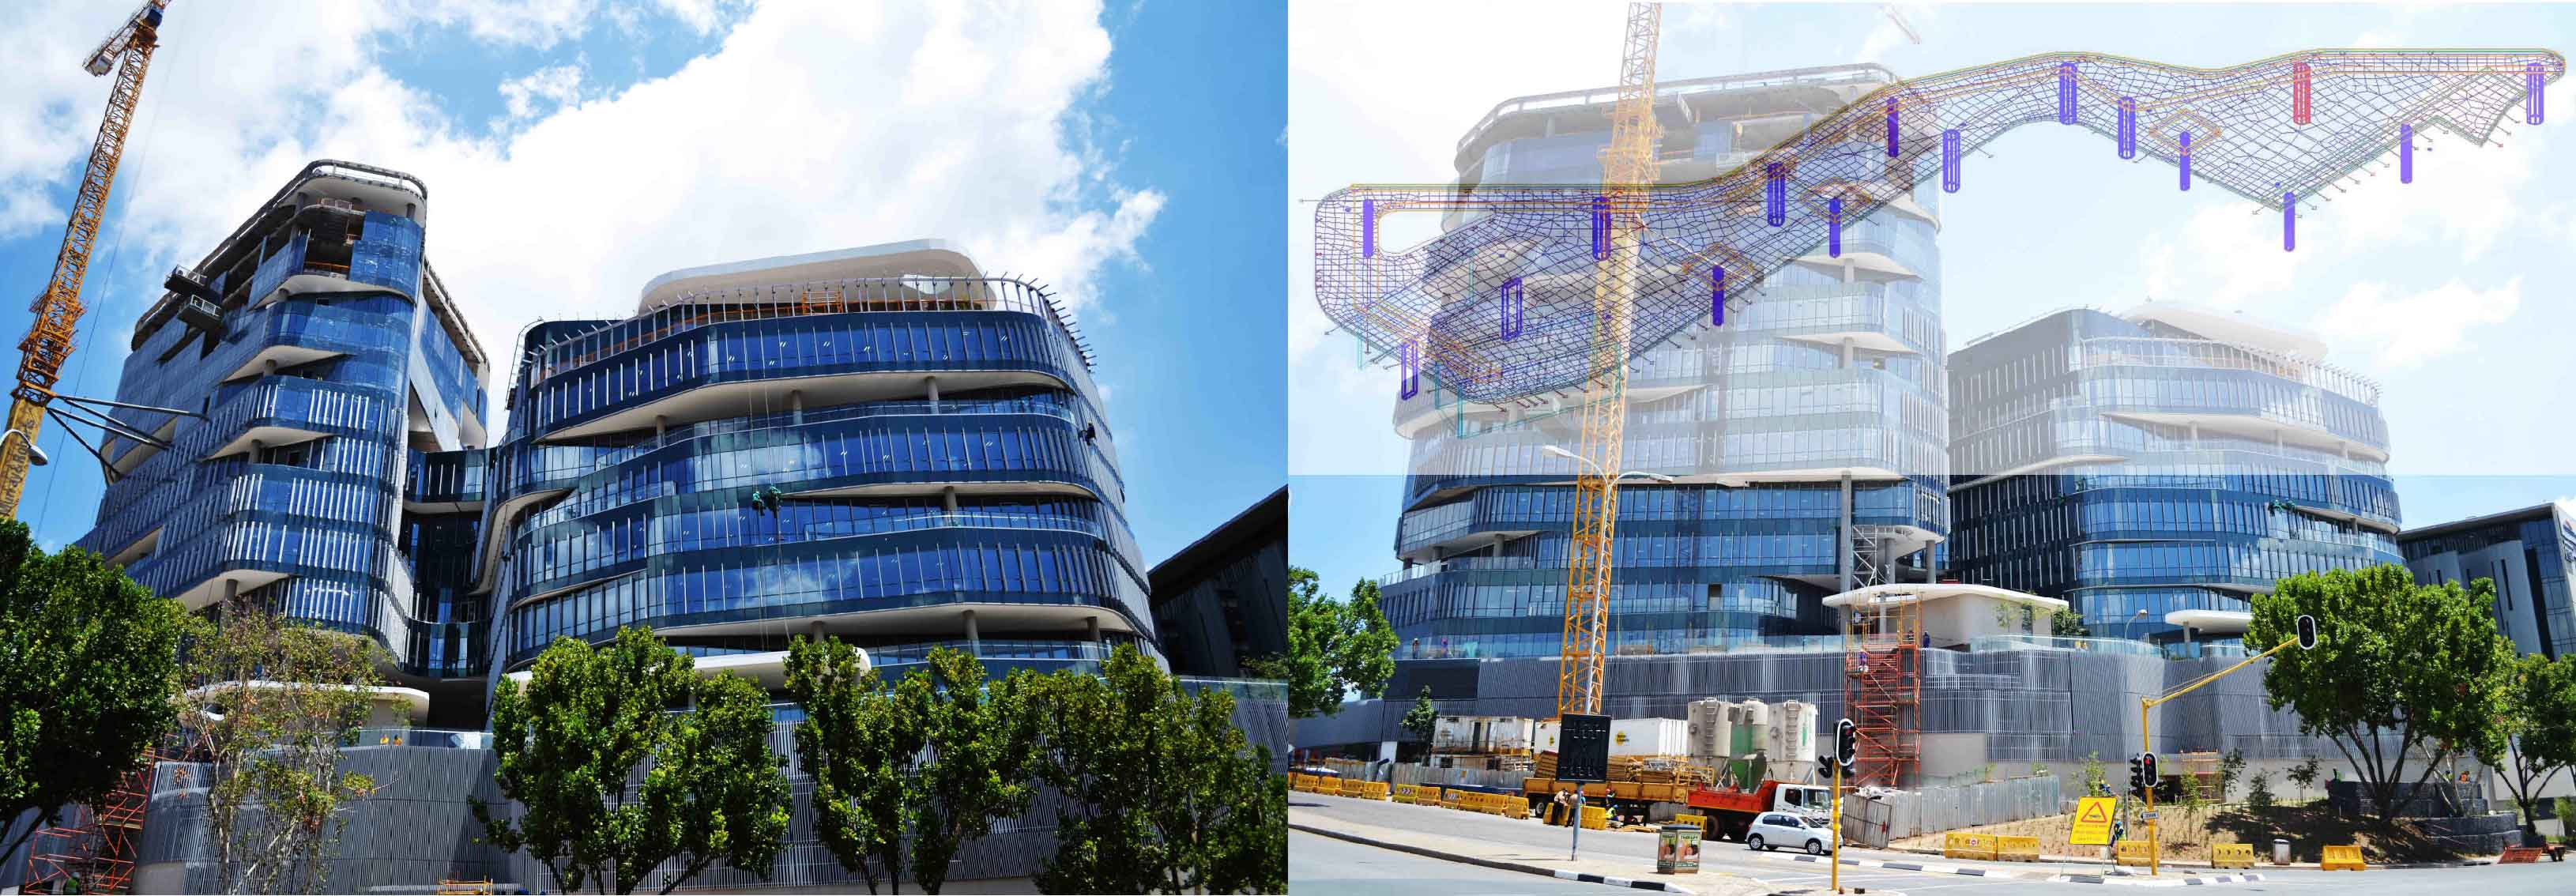 Ernst & Young - Post Tensioned Structure